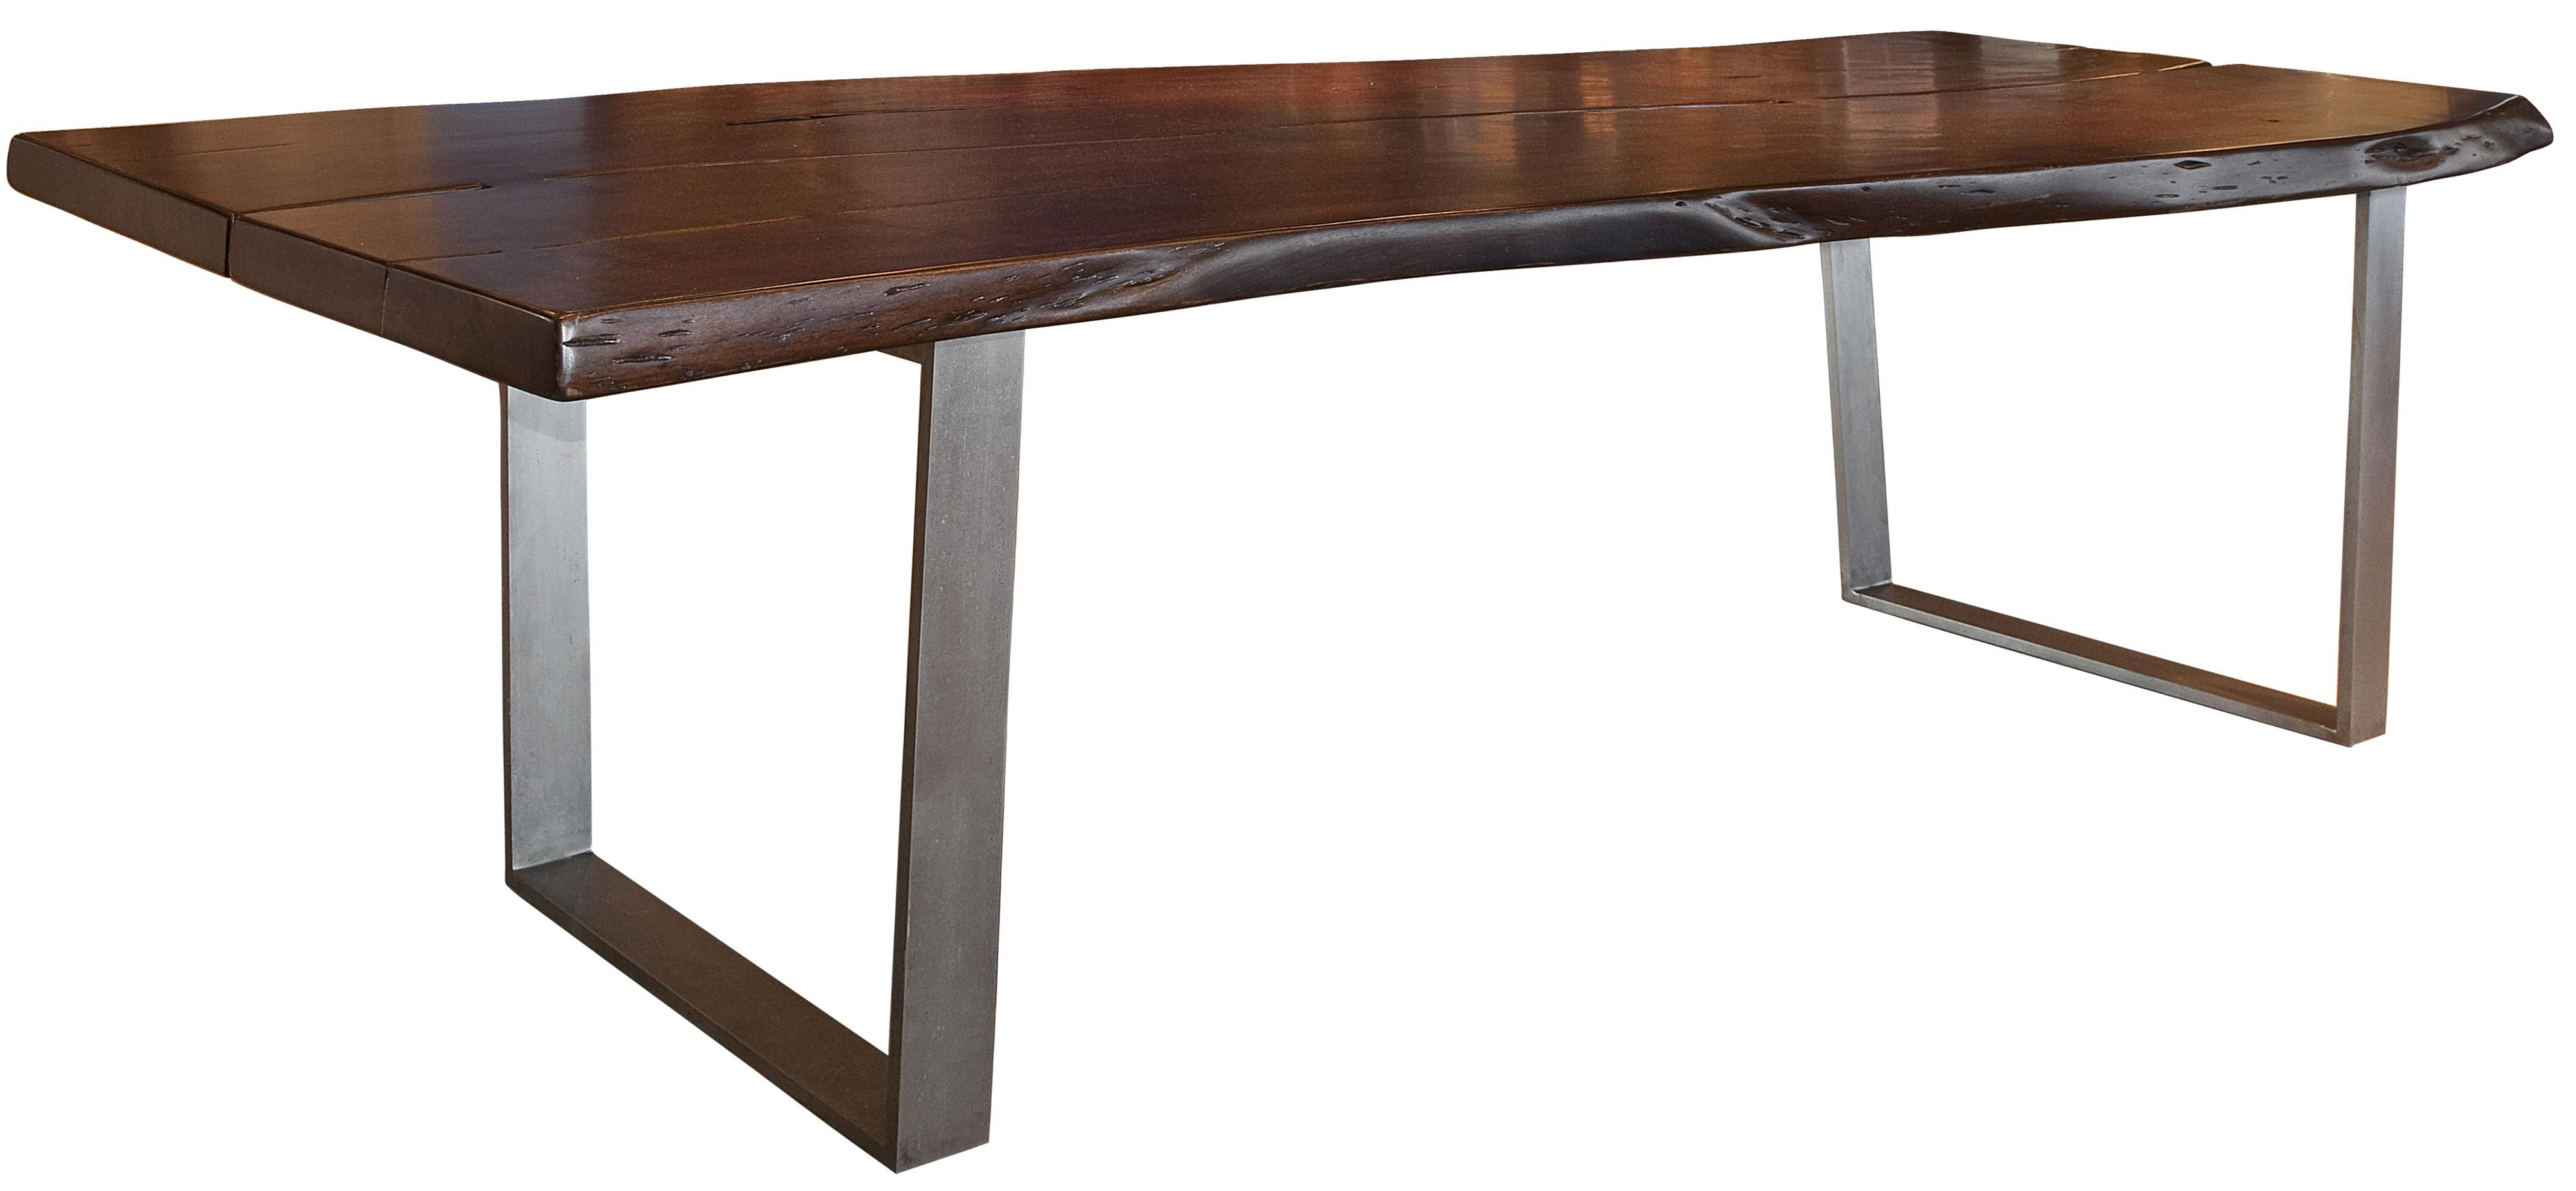 FNL Live Edge Table by Home Trends &Design at Hudson's Furniture